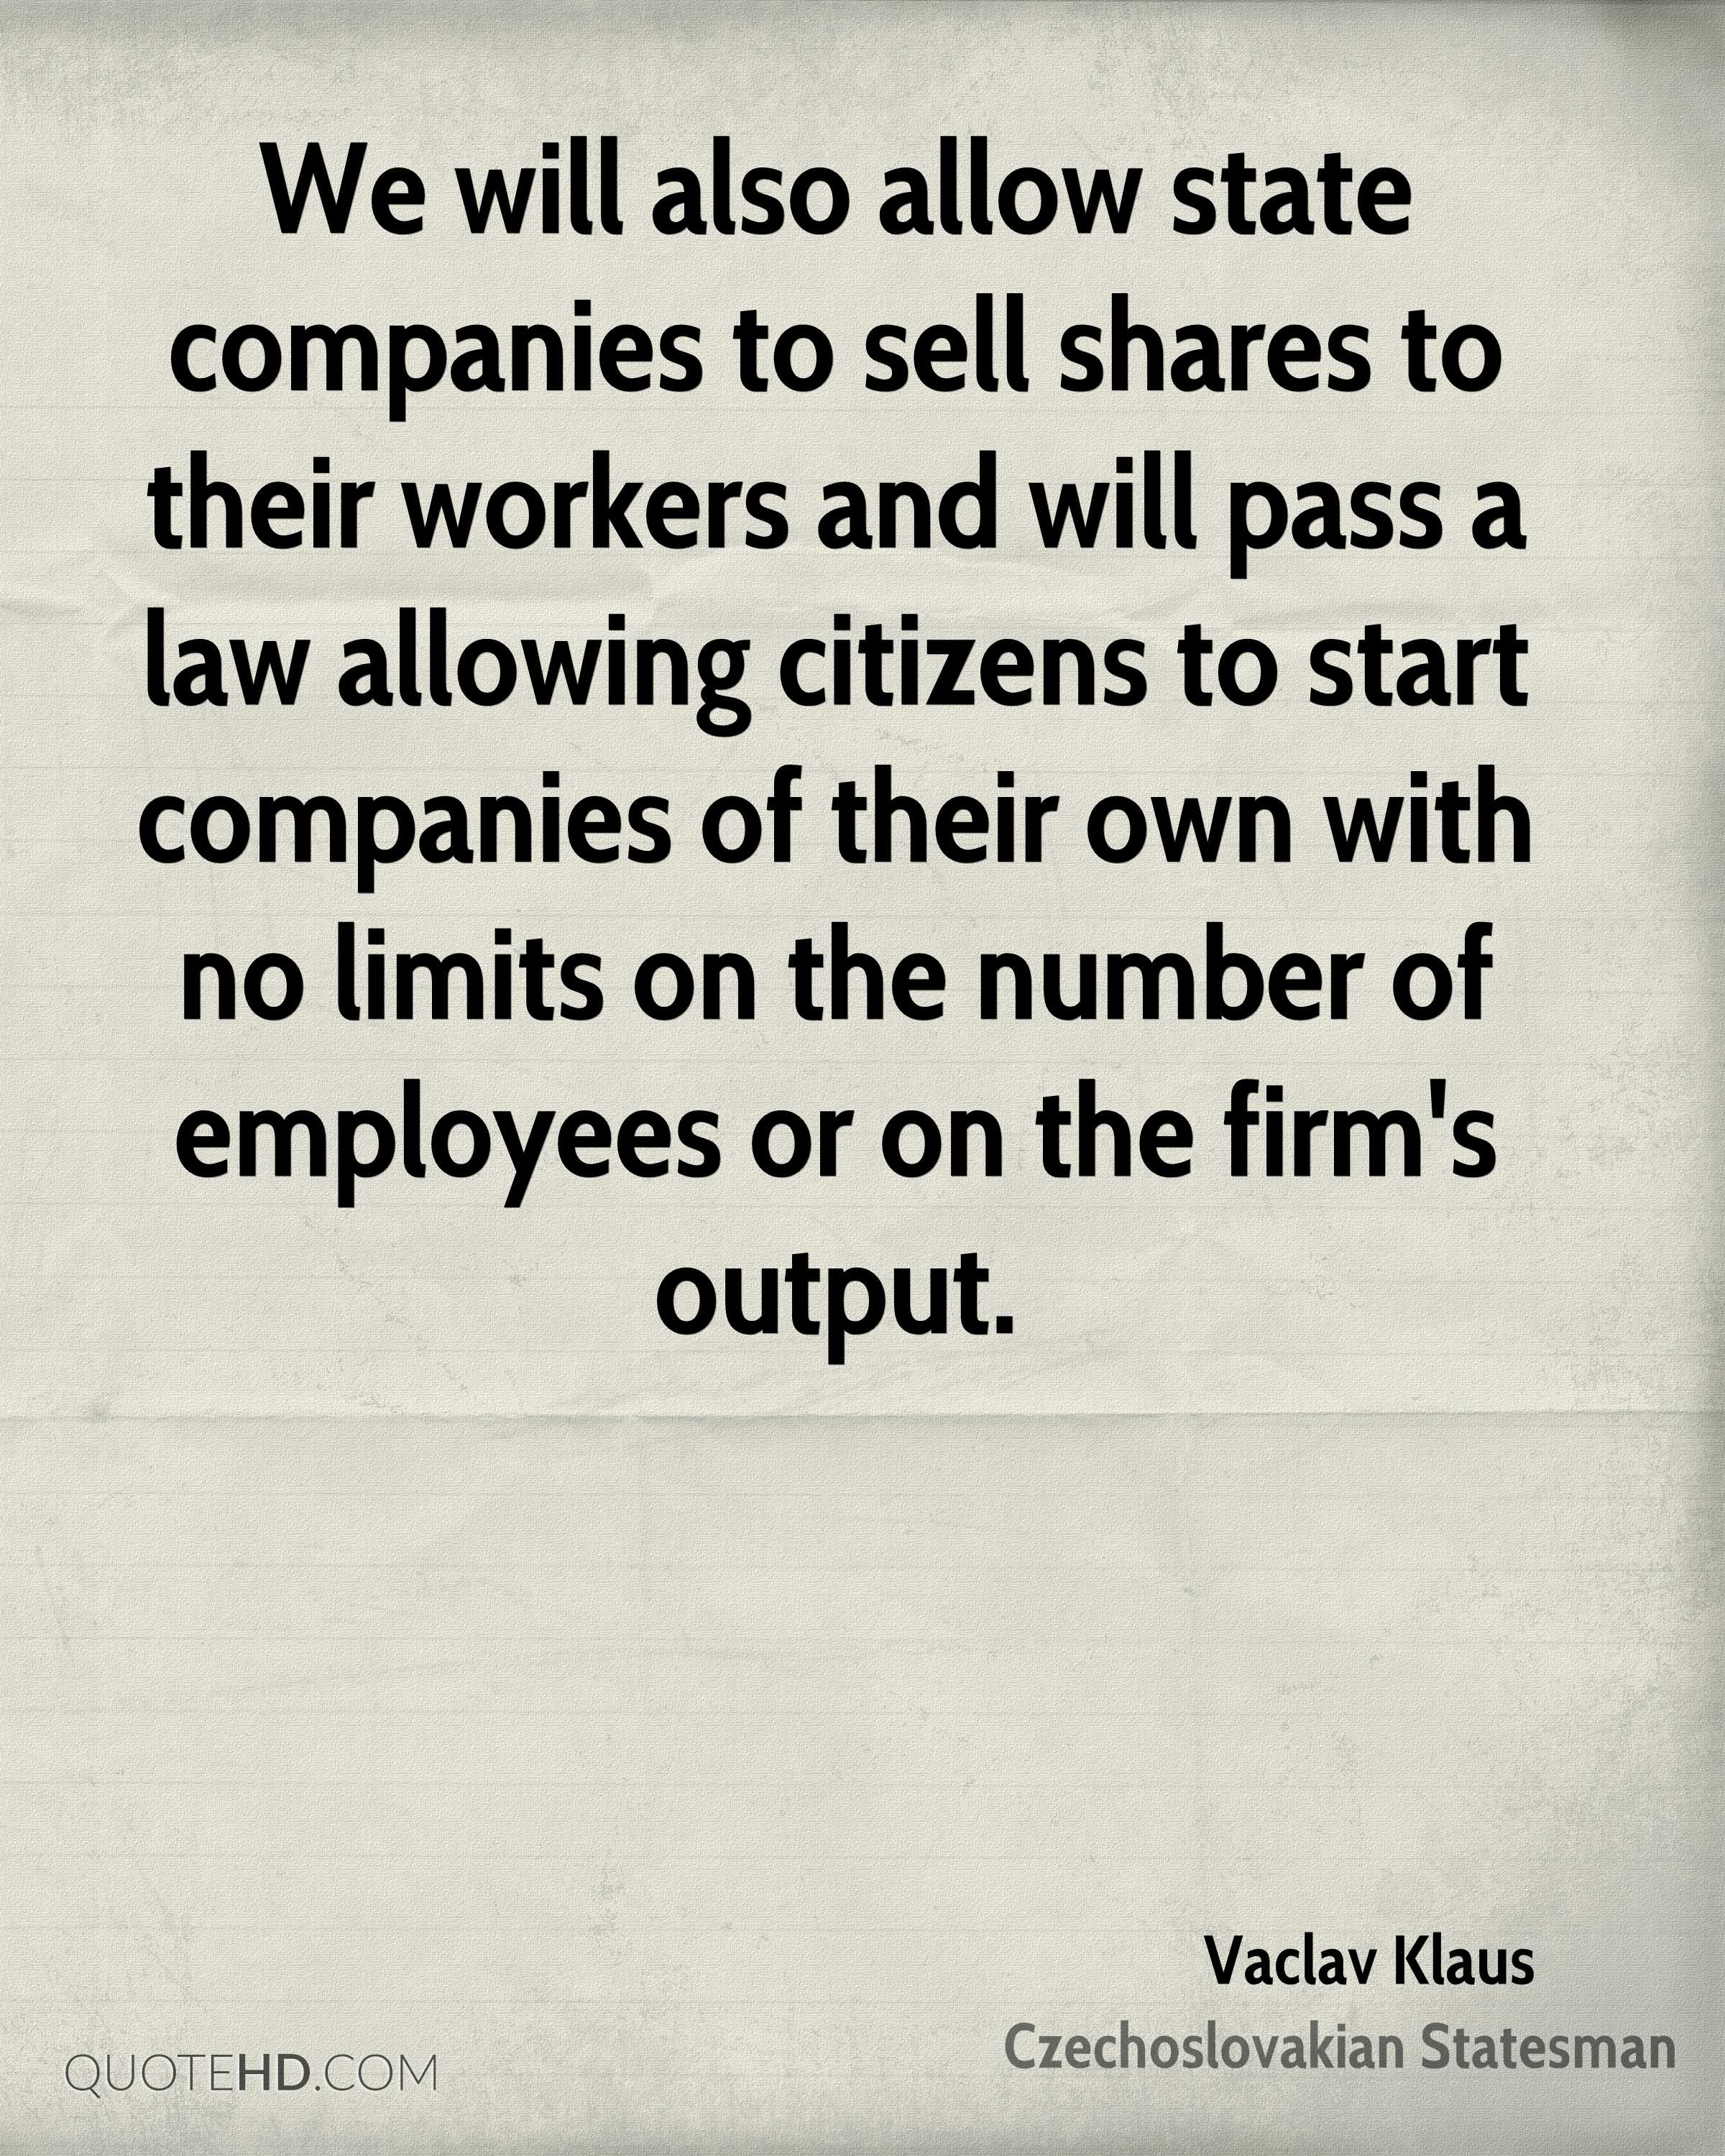 We will also allow state companies to sell shares to their workers and will pass a law allowing citizens to start companies of their own with no limits on the number of employees or on the firm's output.